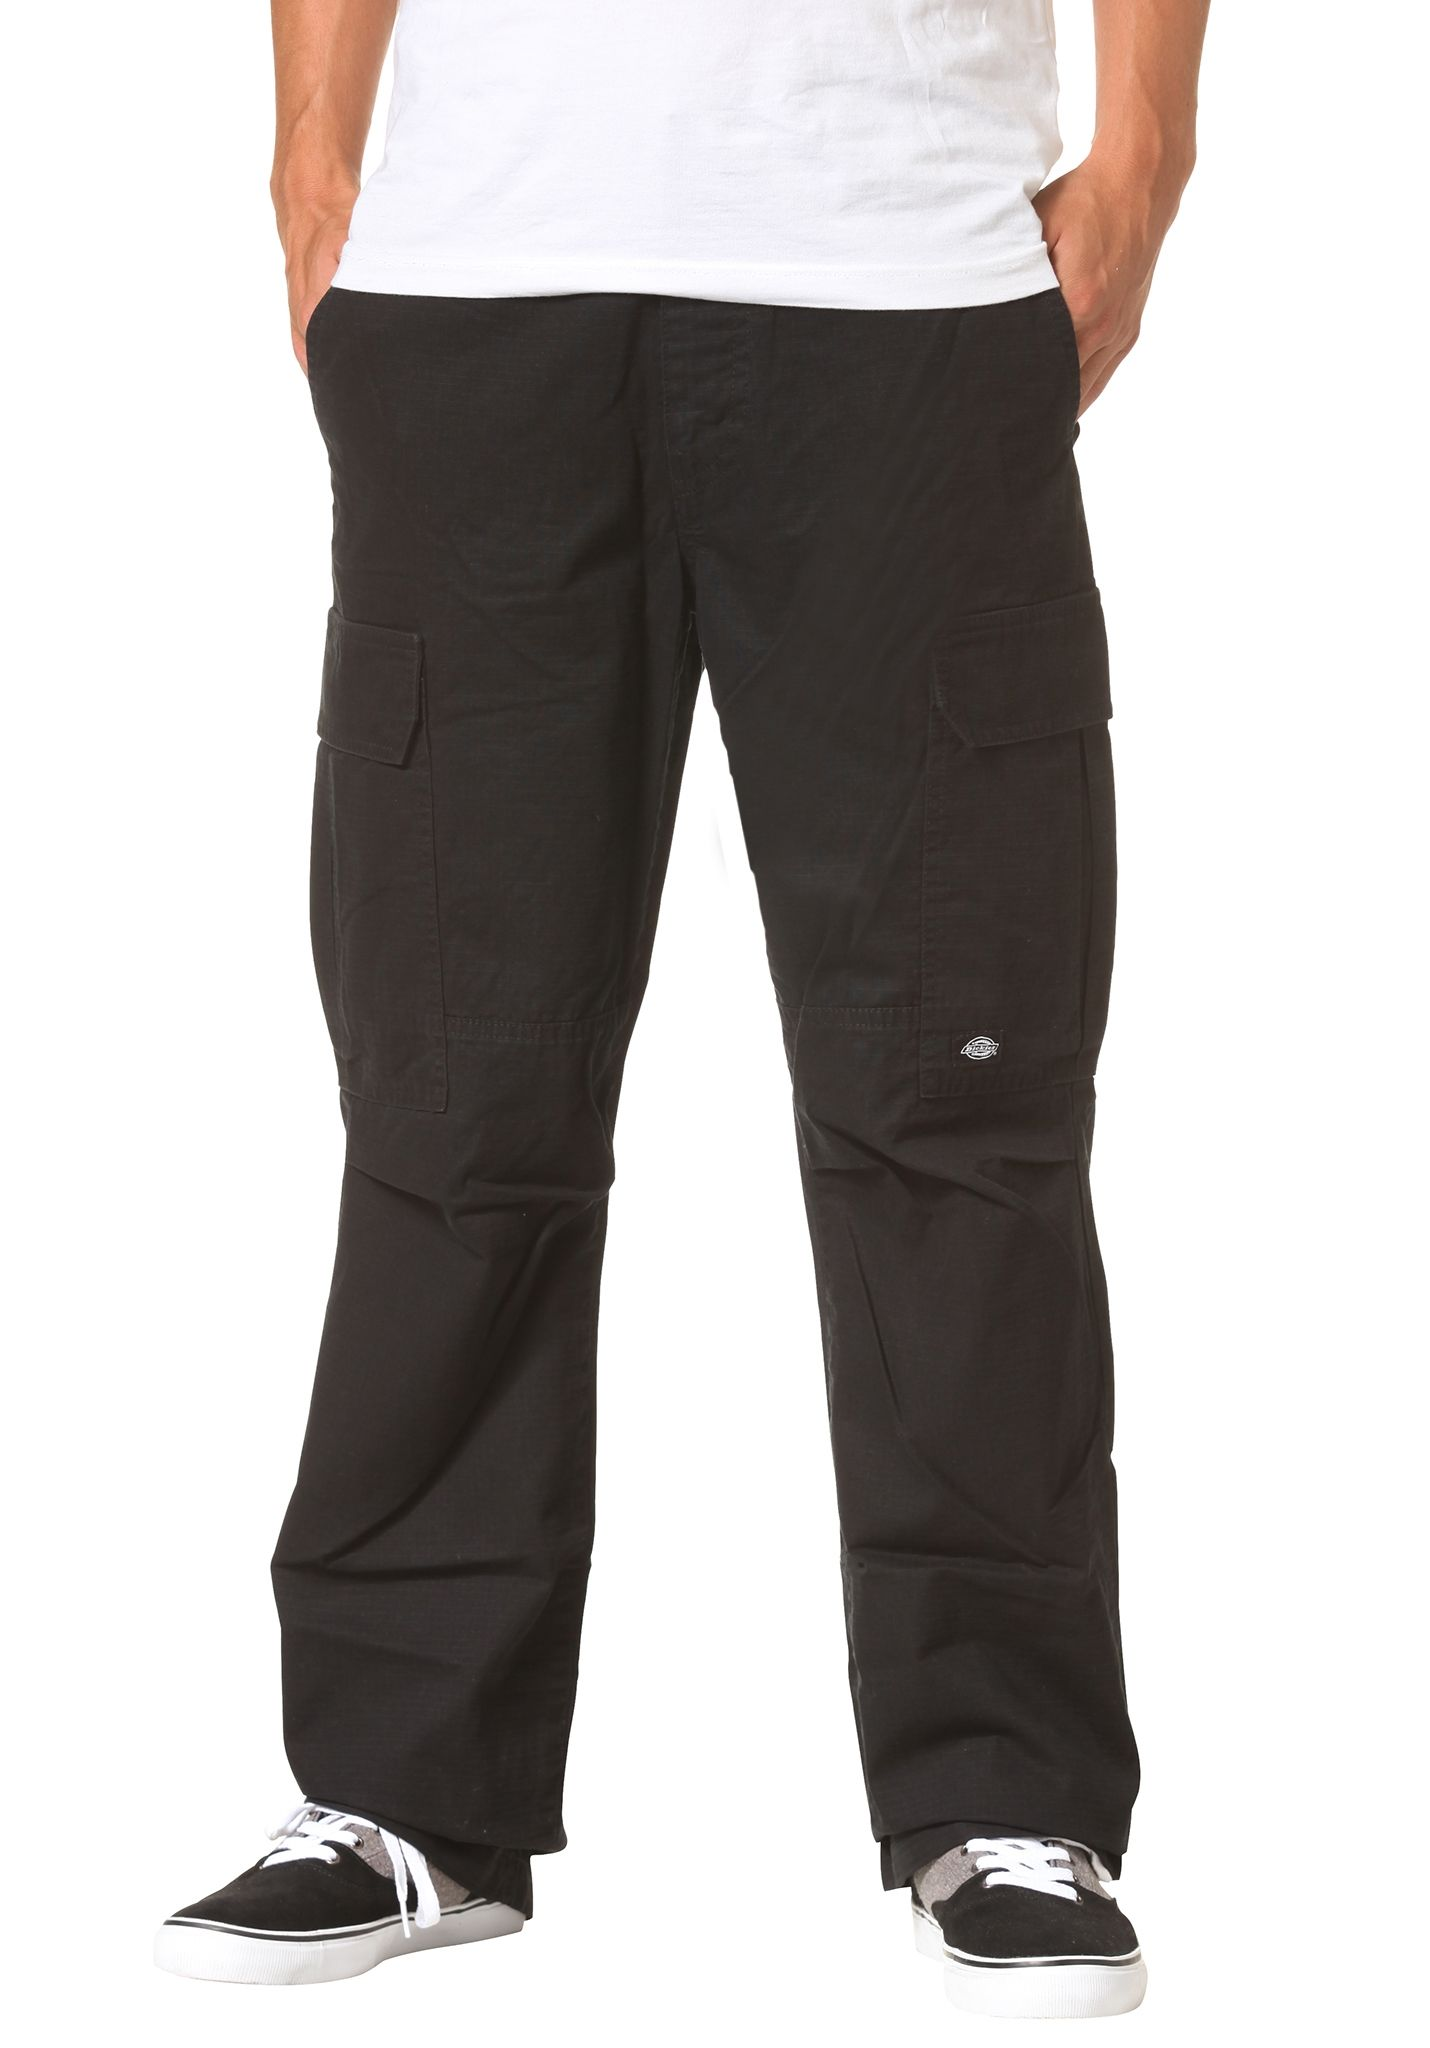 super specials rock-bottom price select for original Dickies New York - Cargo Pants for Men - Black